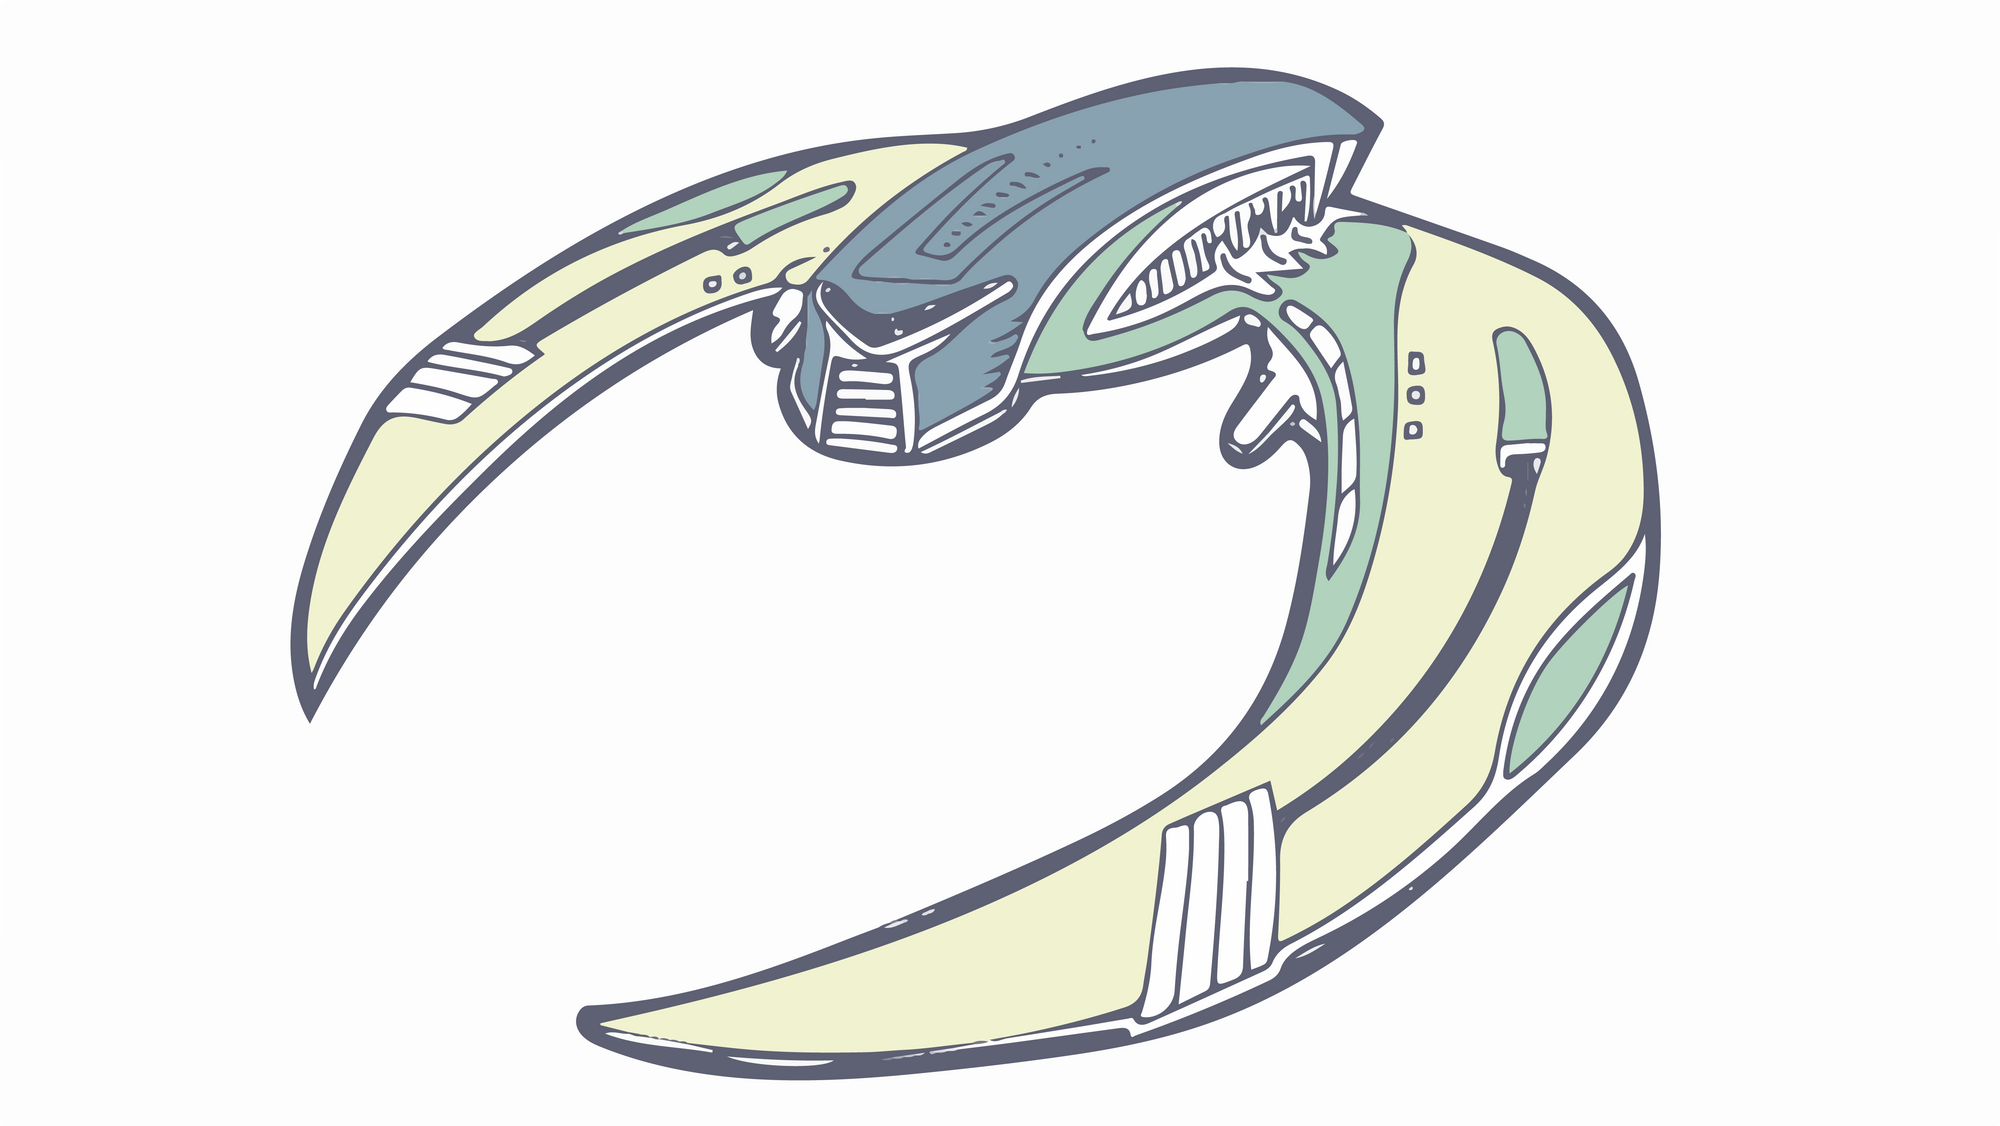 drawing of a Cylon Raider